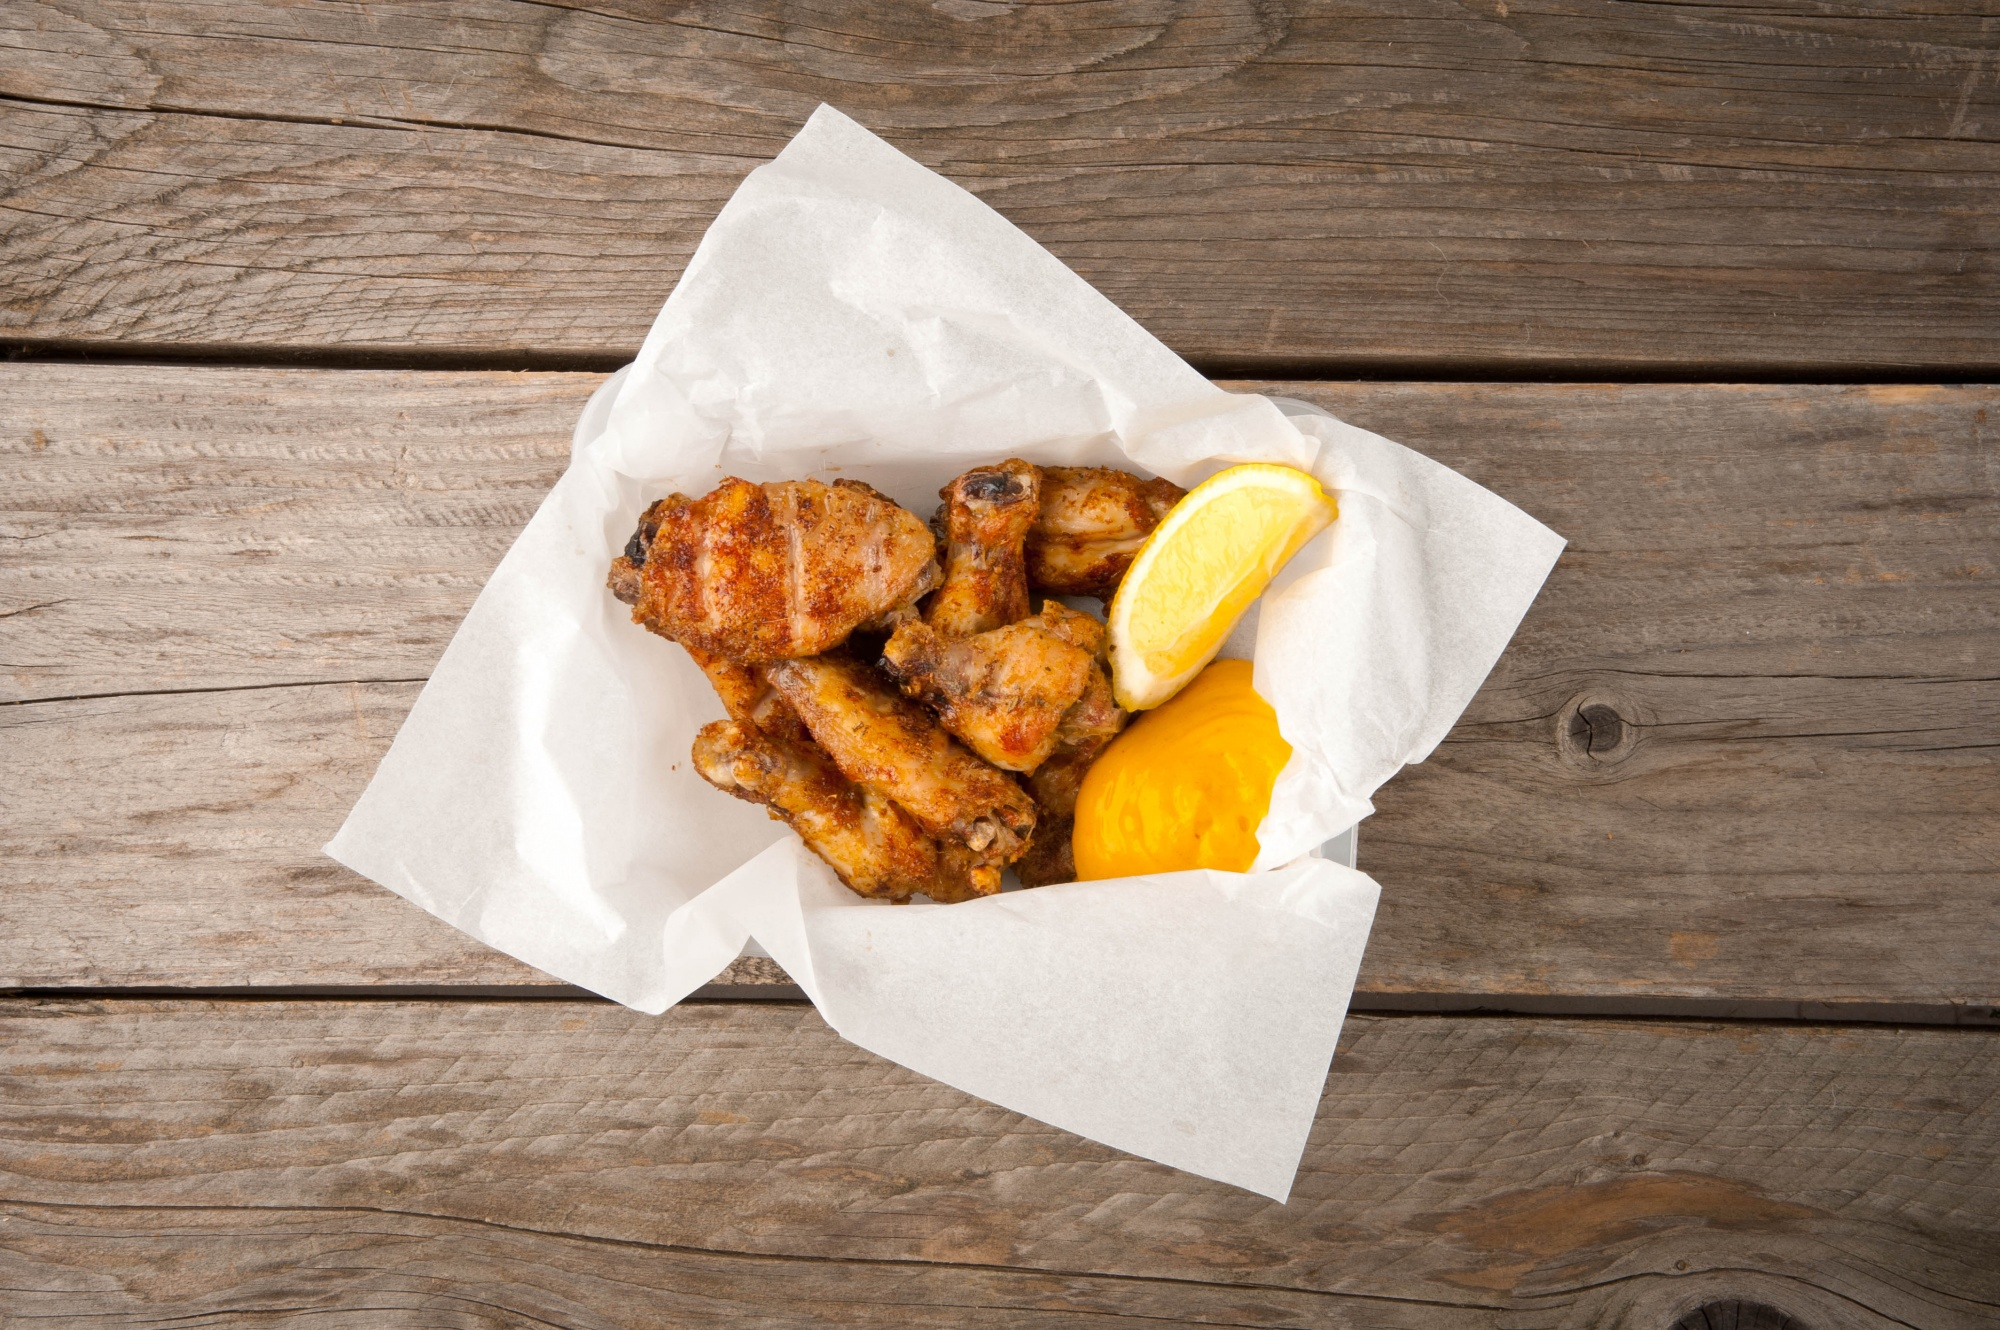 Chicken wings and spicy mayonnaise